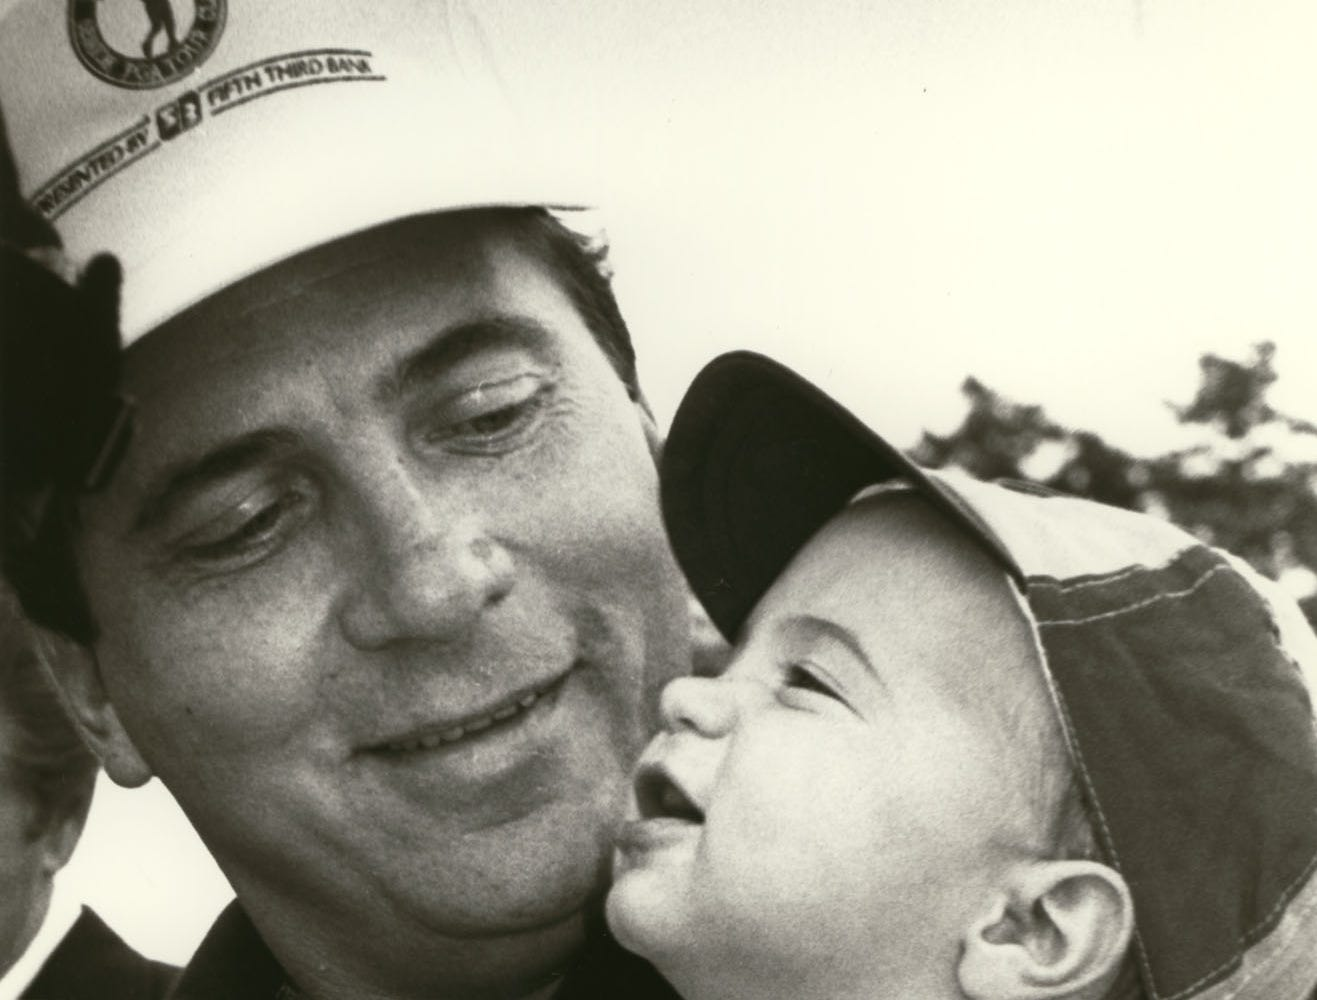 SPORTS_BENCH : undated photo of Johnny Bench with his son Bobby Bench. Scanned October 18, 2007